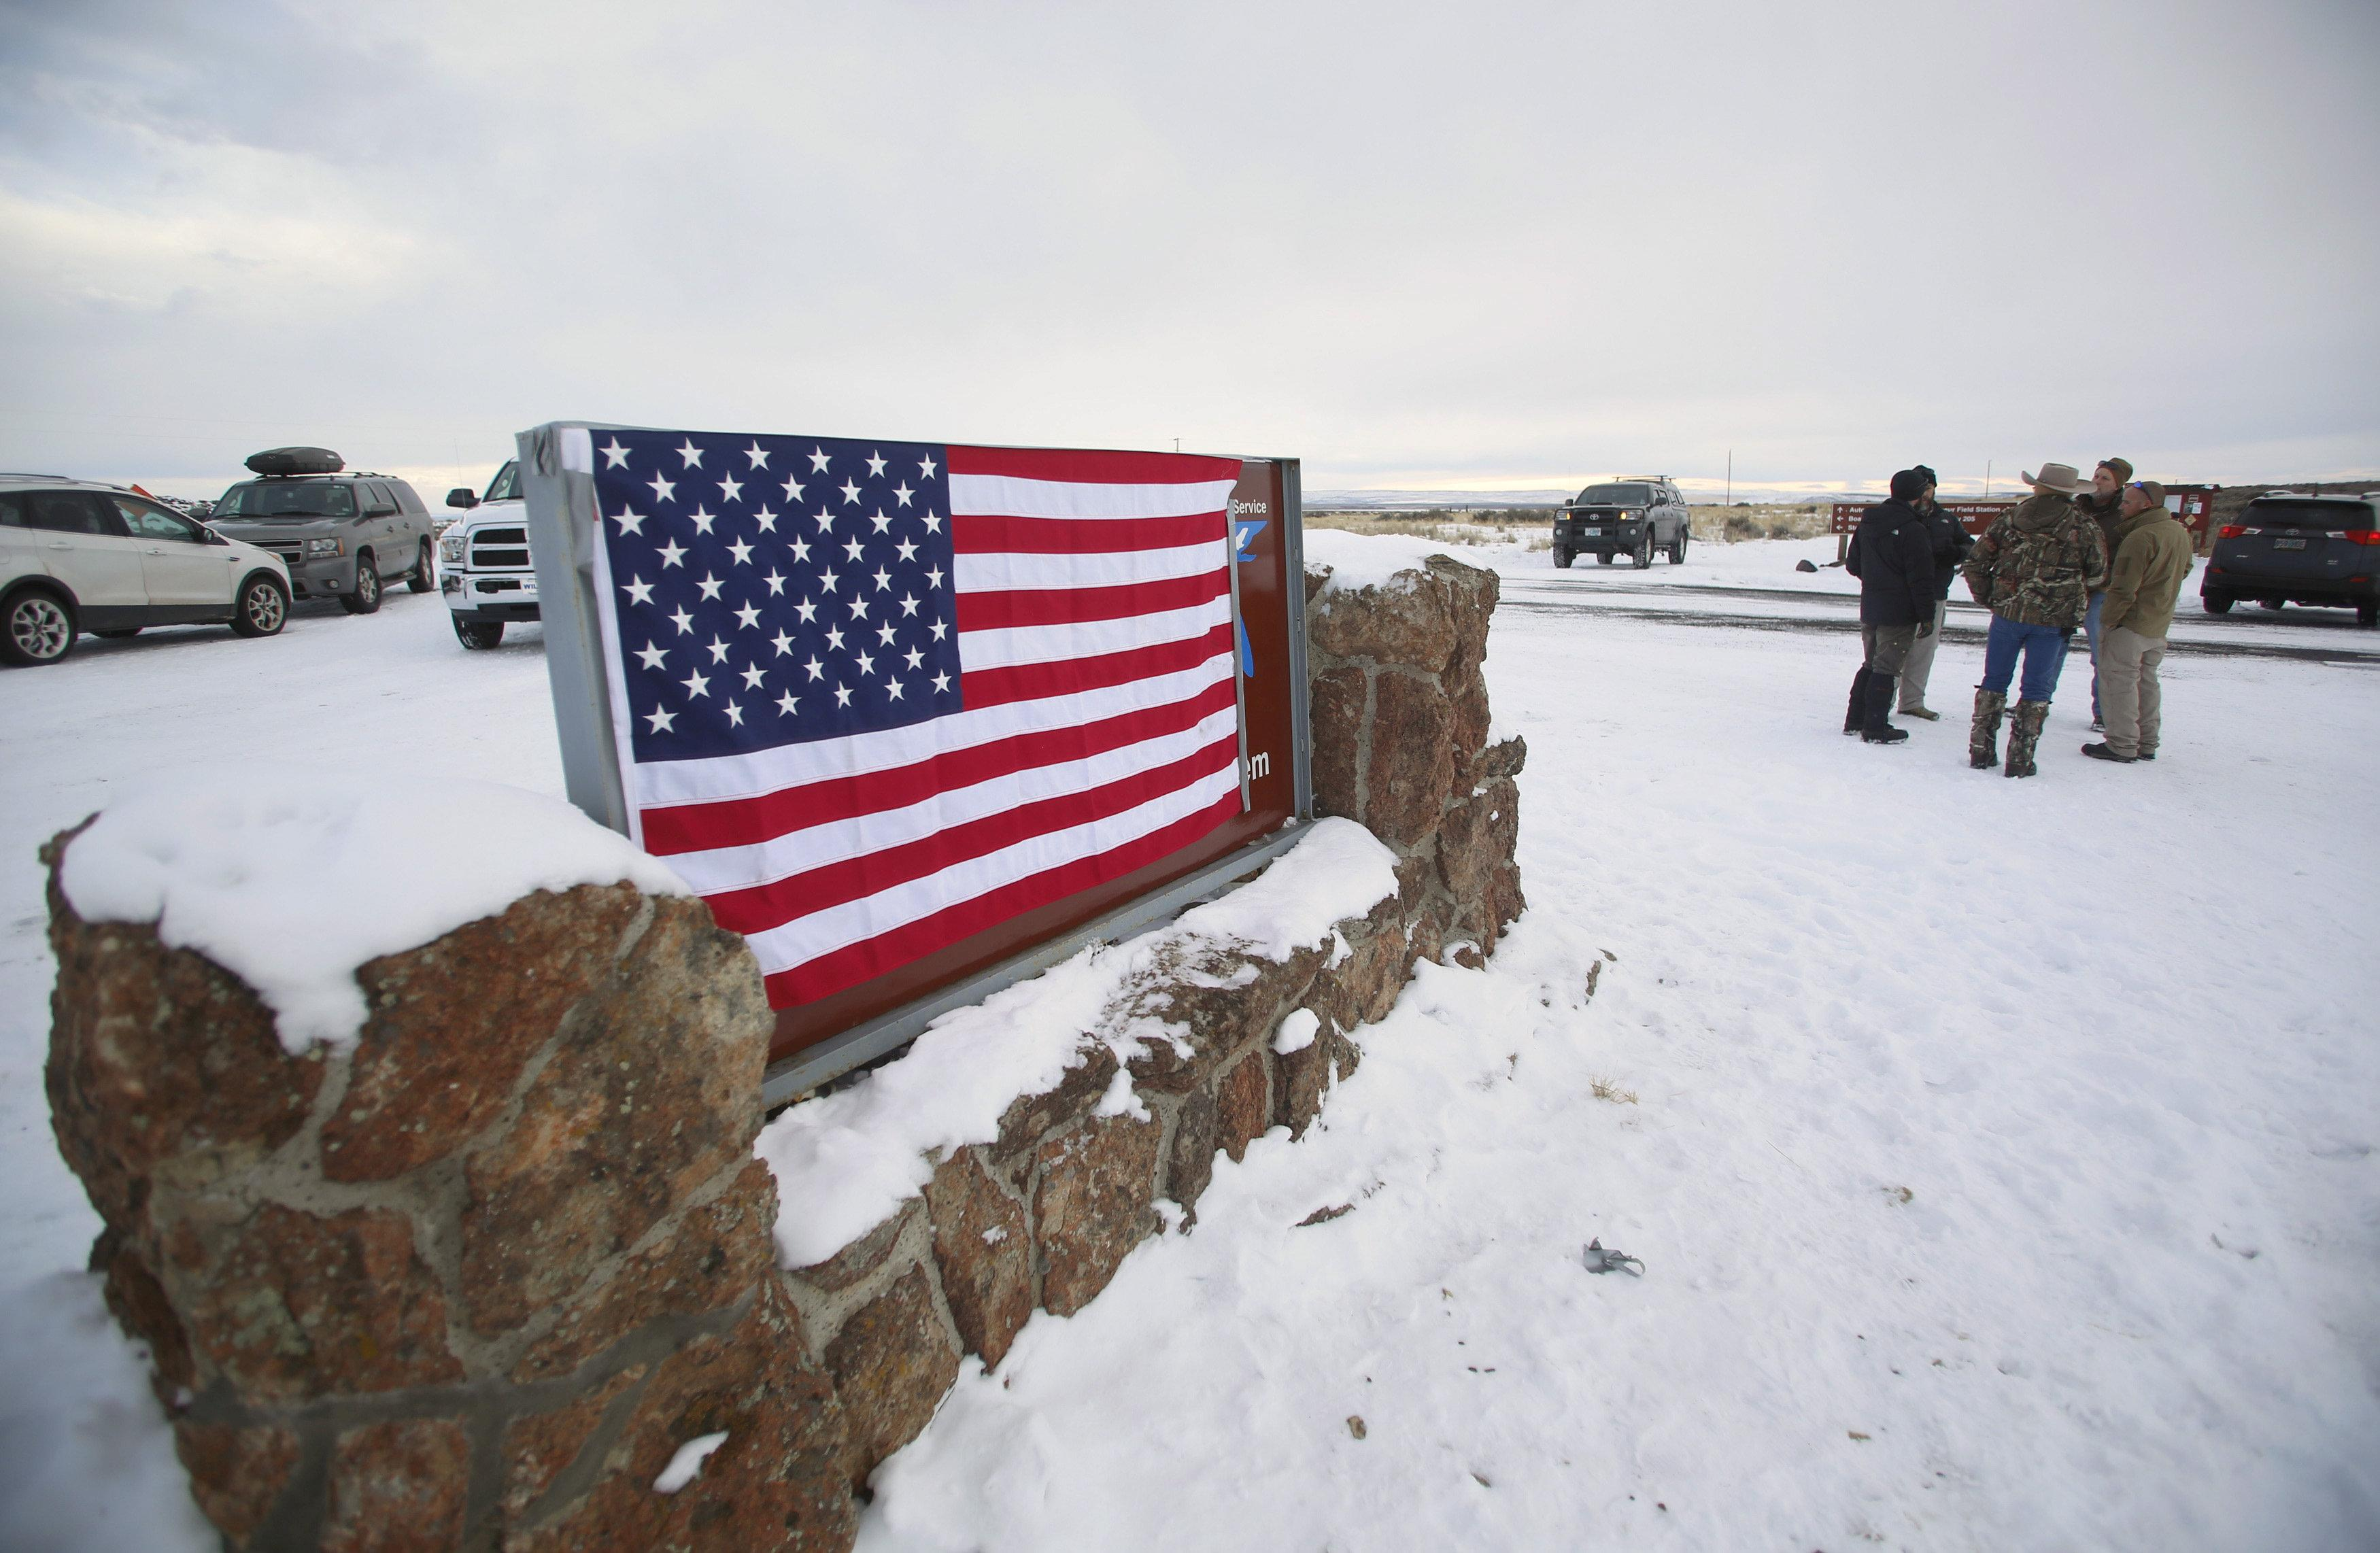 A U.S. flag covers a sign at the entrance of the Malheur National Wildlife Refuge near Burns, Oregon, U.S. January 3, 2016.  Jim Urquhart